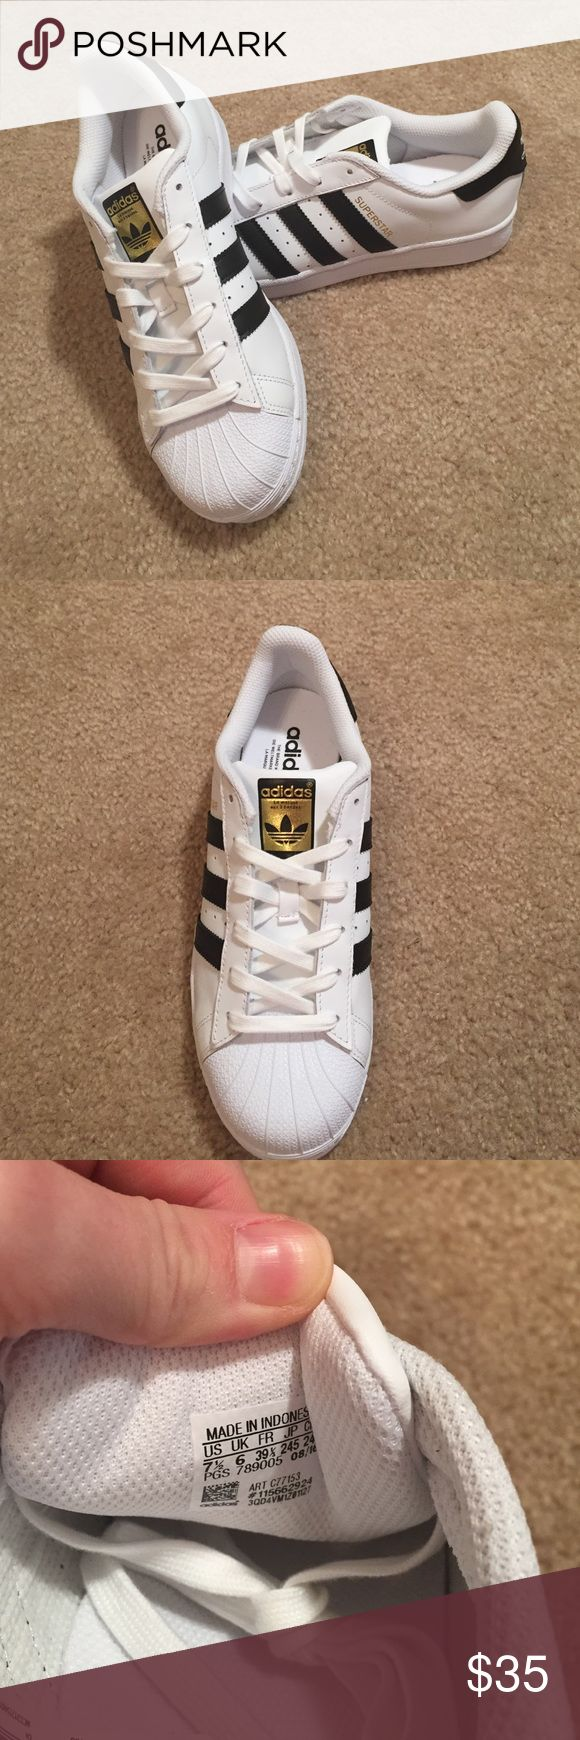 Adidas shoes SIZE 7 1/2 women's. NEVER WORN! Classic adidas shoes. Adidas Shoes Sneakers